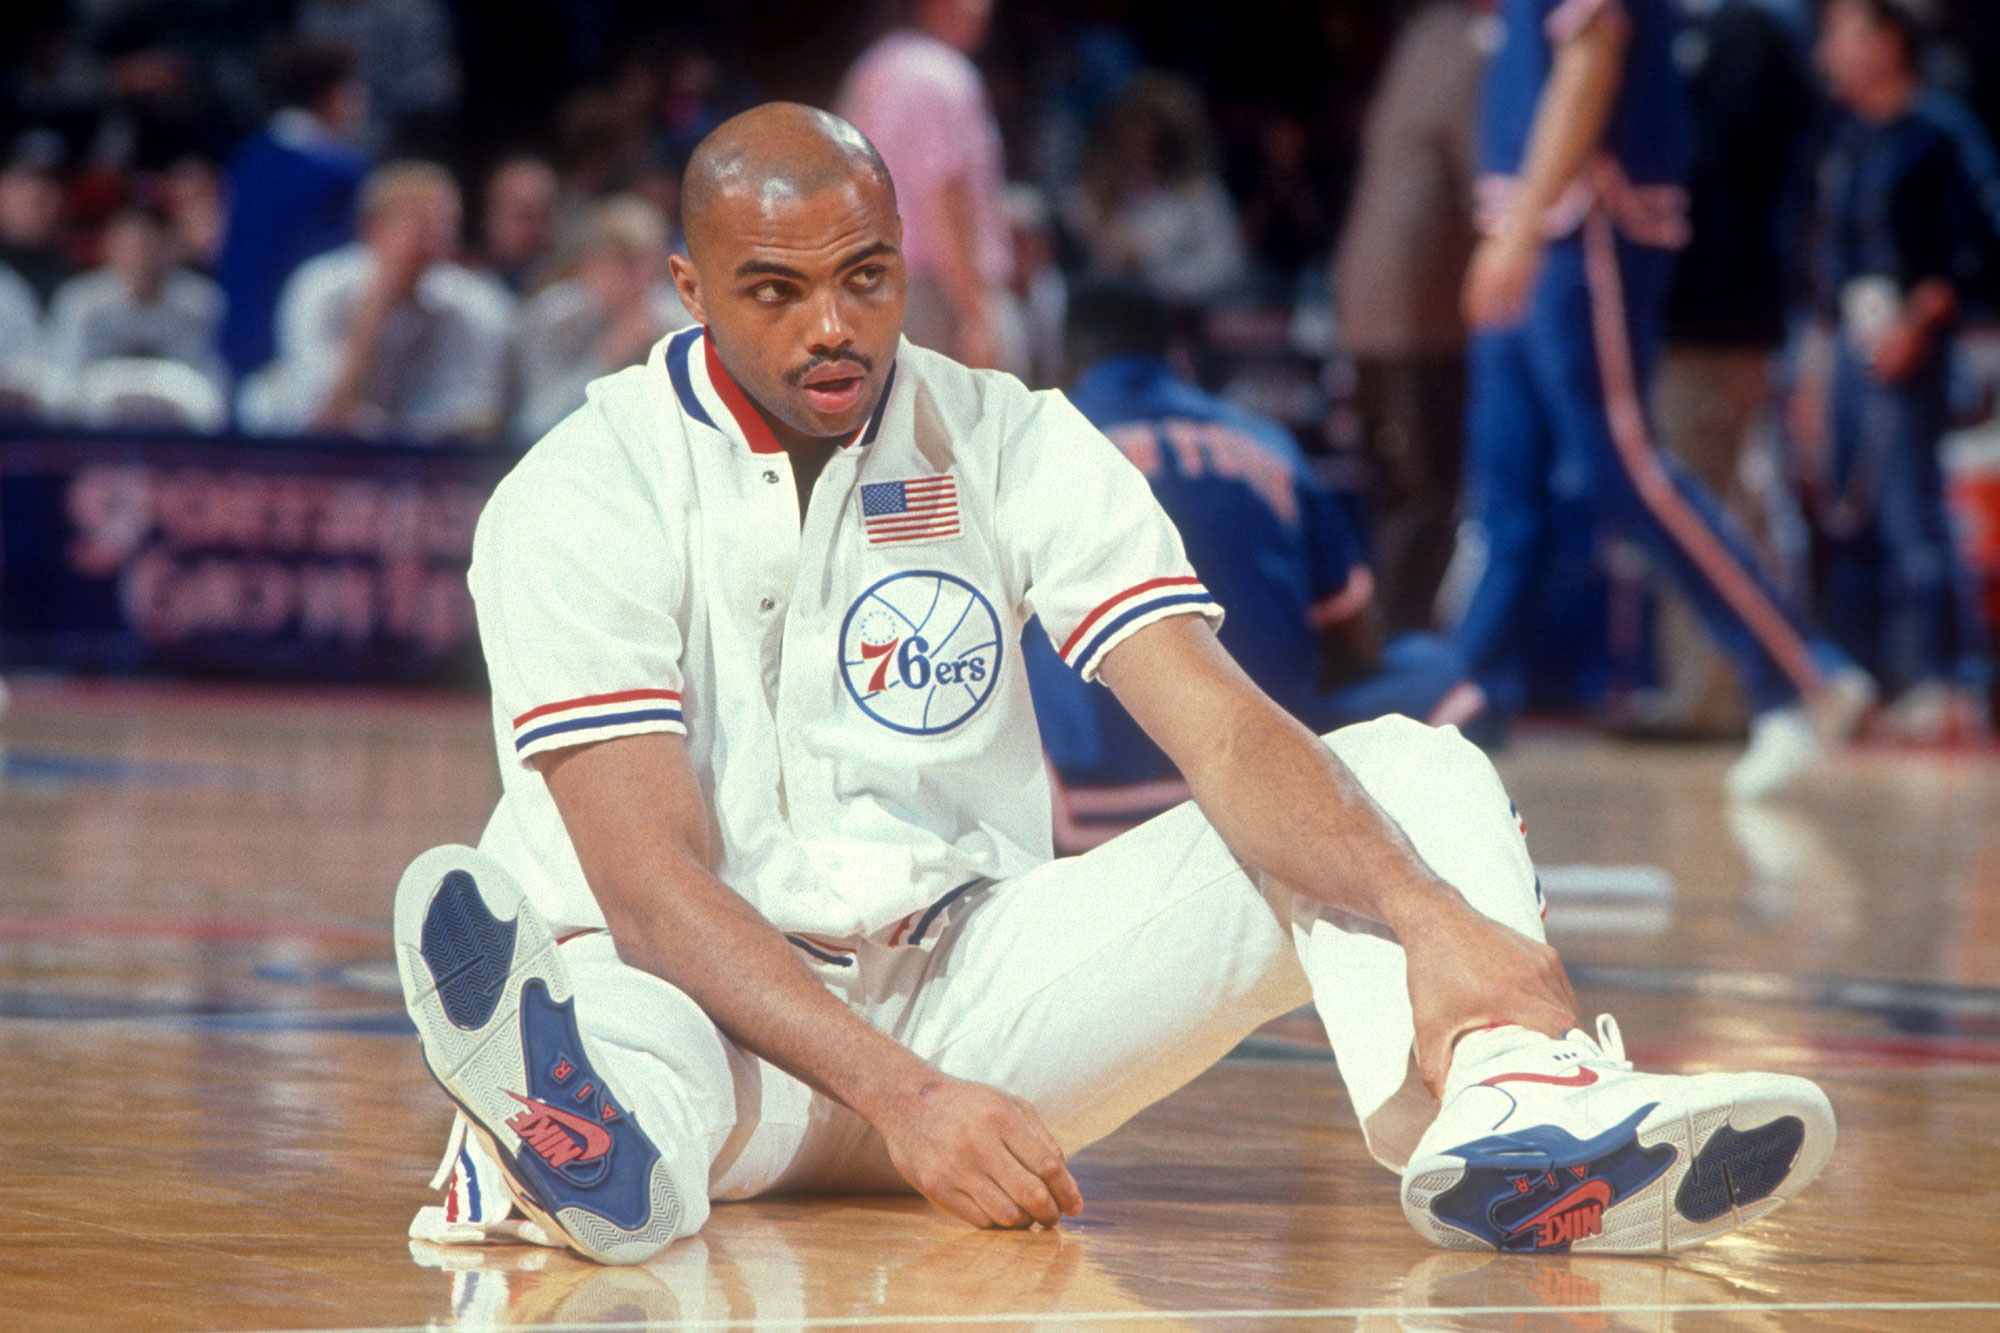 Charles Barkley shares his side of 1991